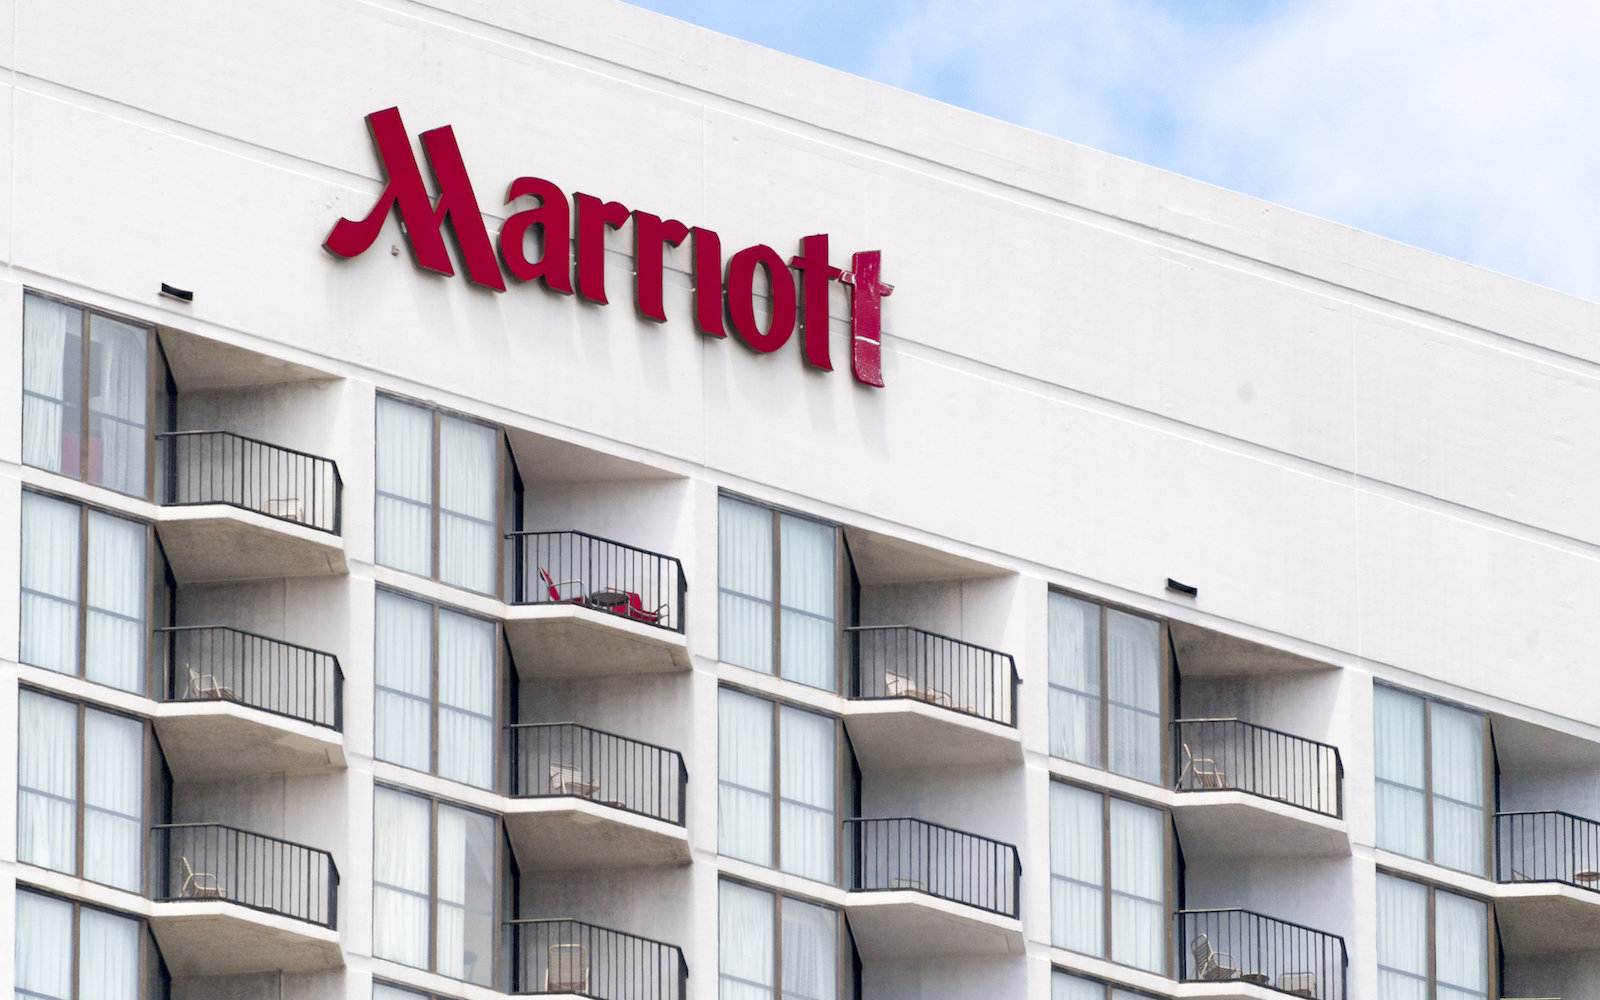 Marriott hotel sign in a downtown building, red metal lettering placed vertically on round building facade.